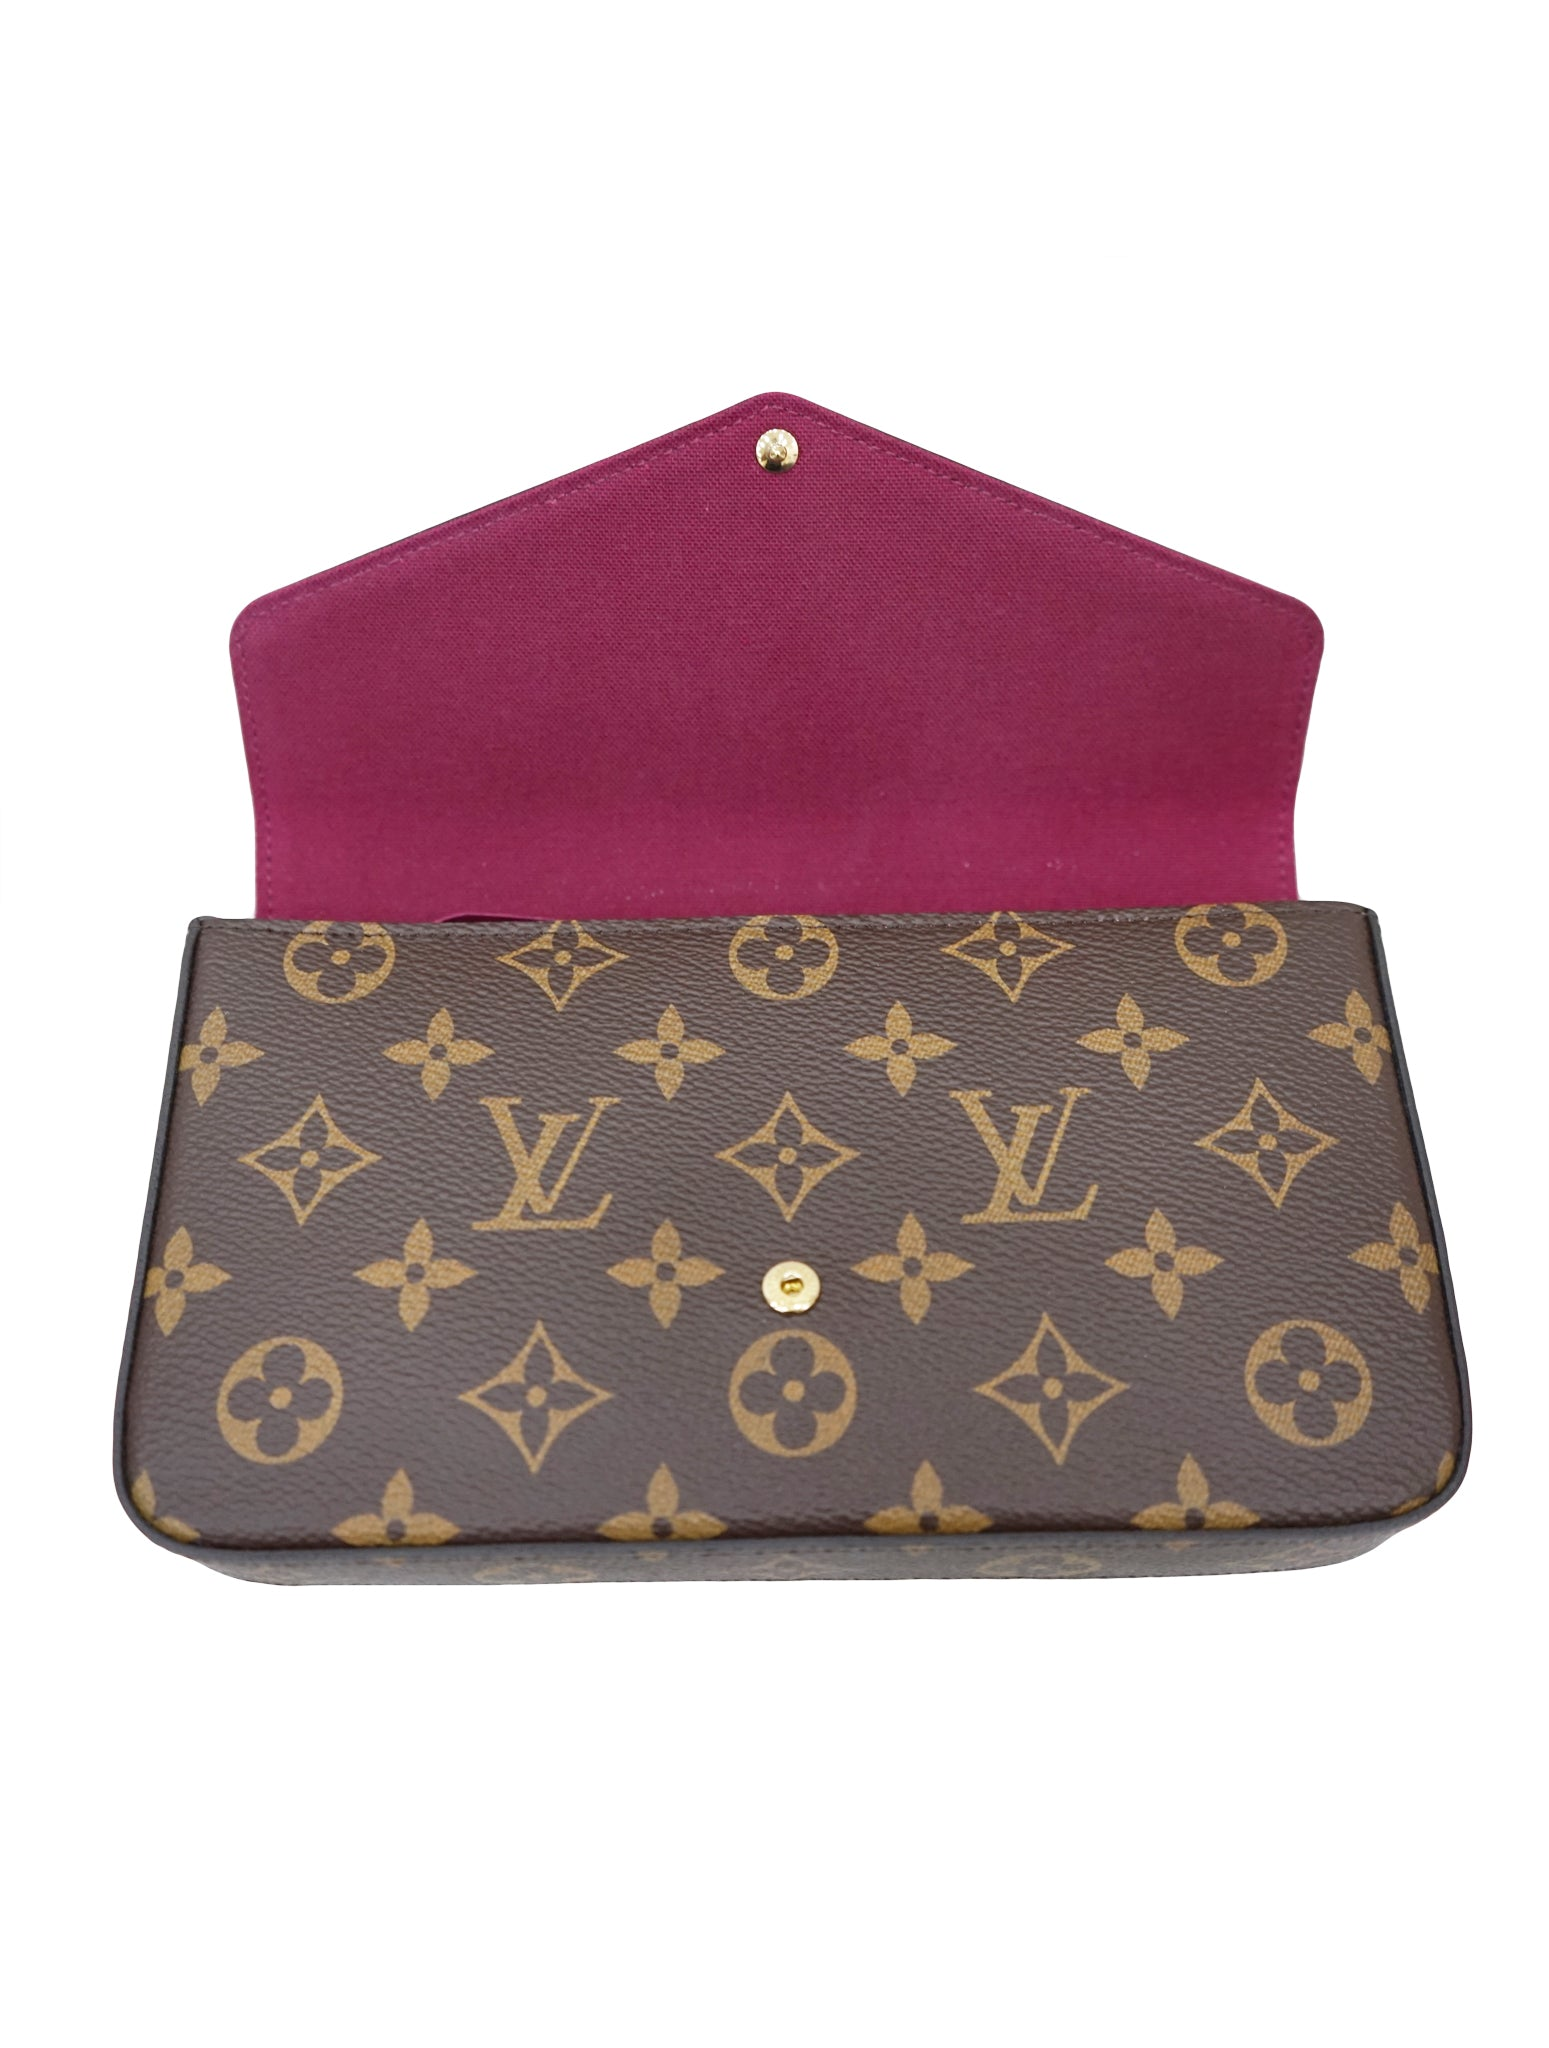 MONOGRAM CANVAS POCHETTE FELICIE BAG